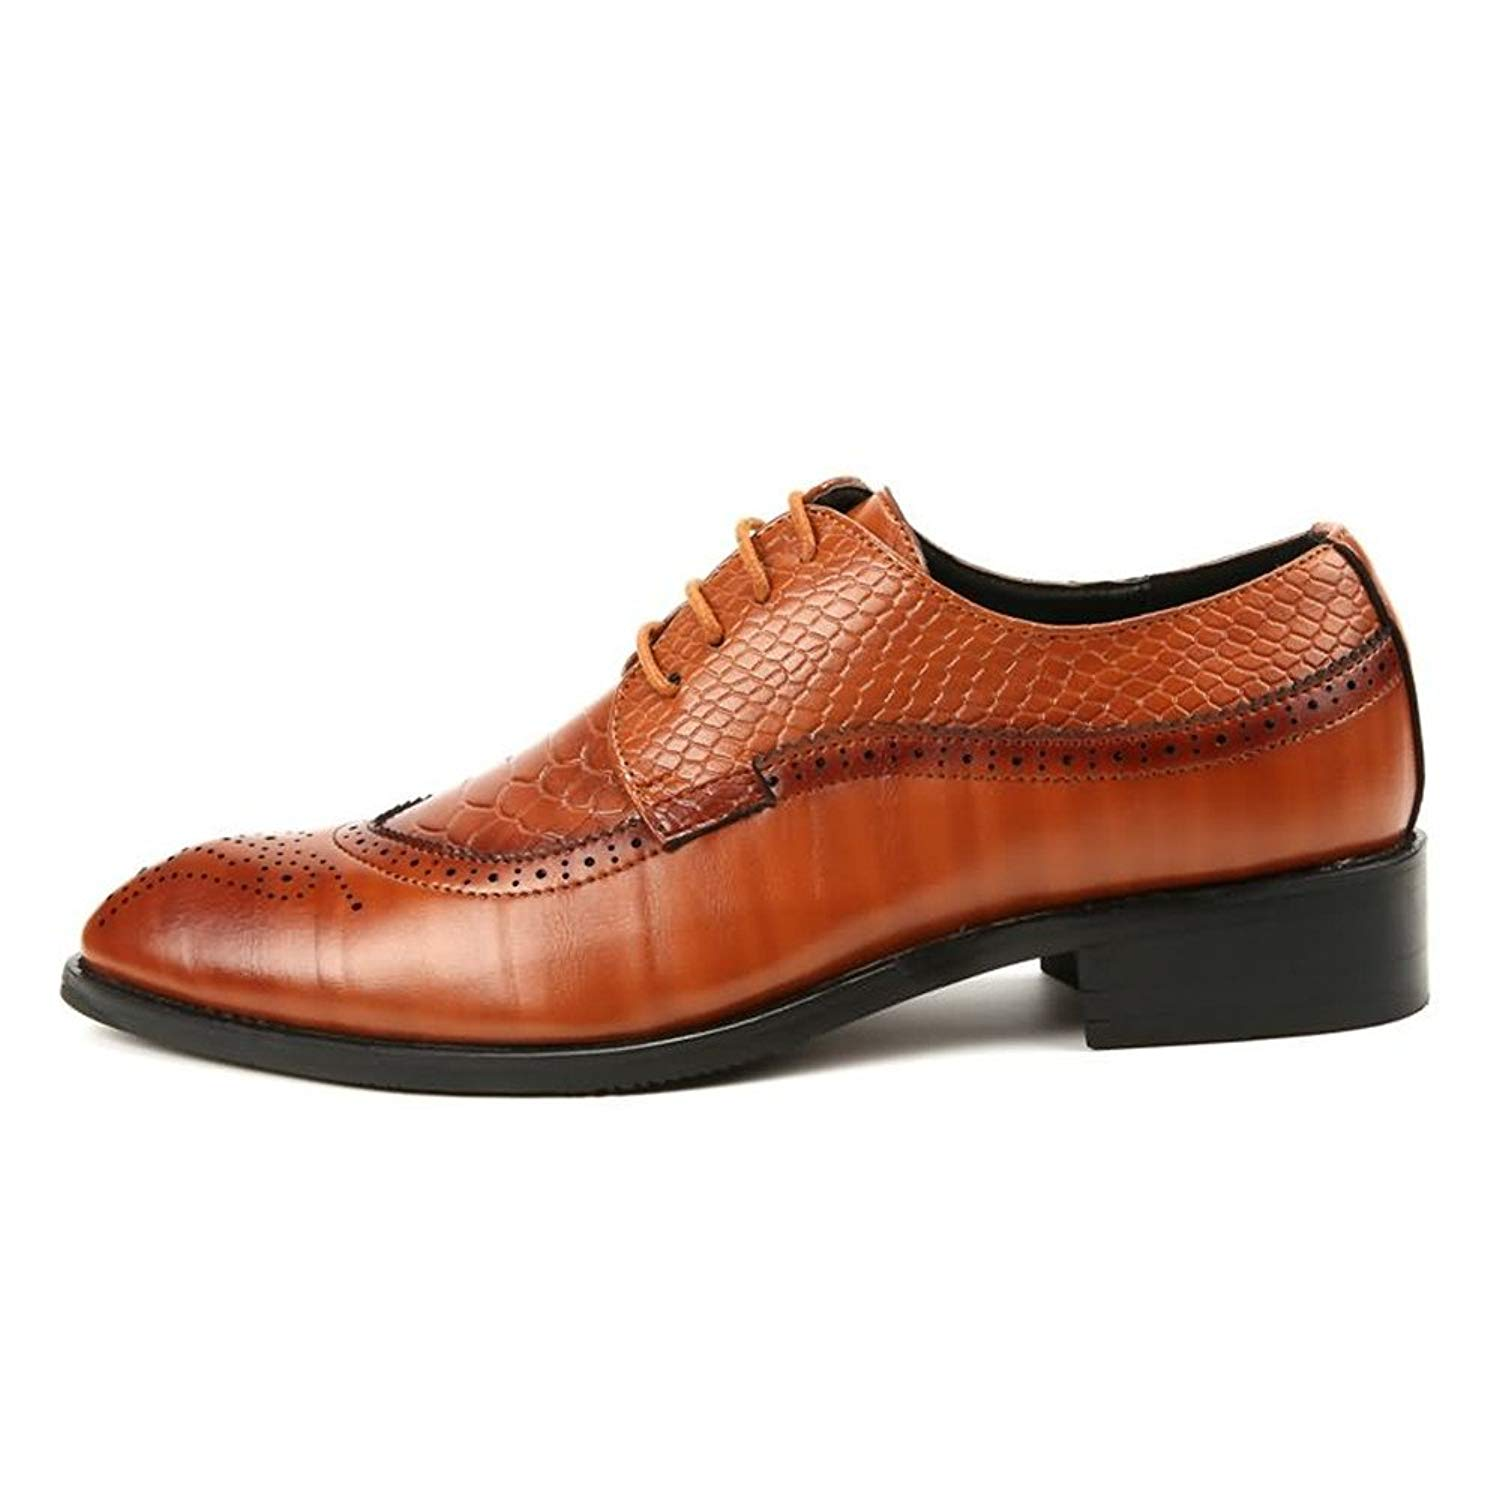 Muyin Men's Oxfords Pointed Toe Flat Heel Soft PU Leather Lace up Business Casual Shoes